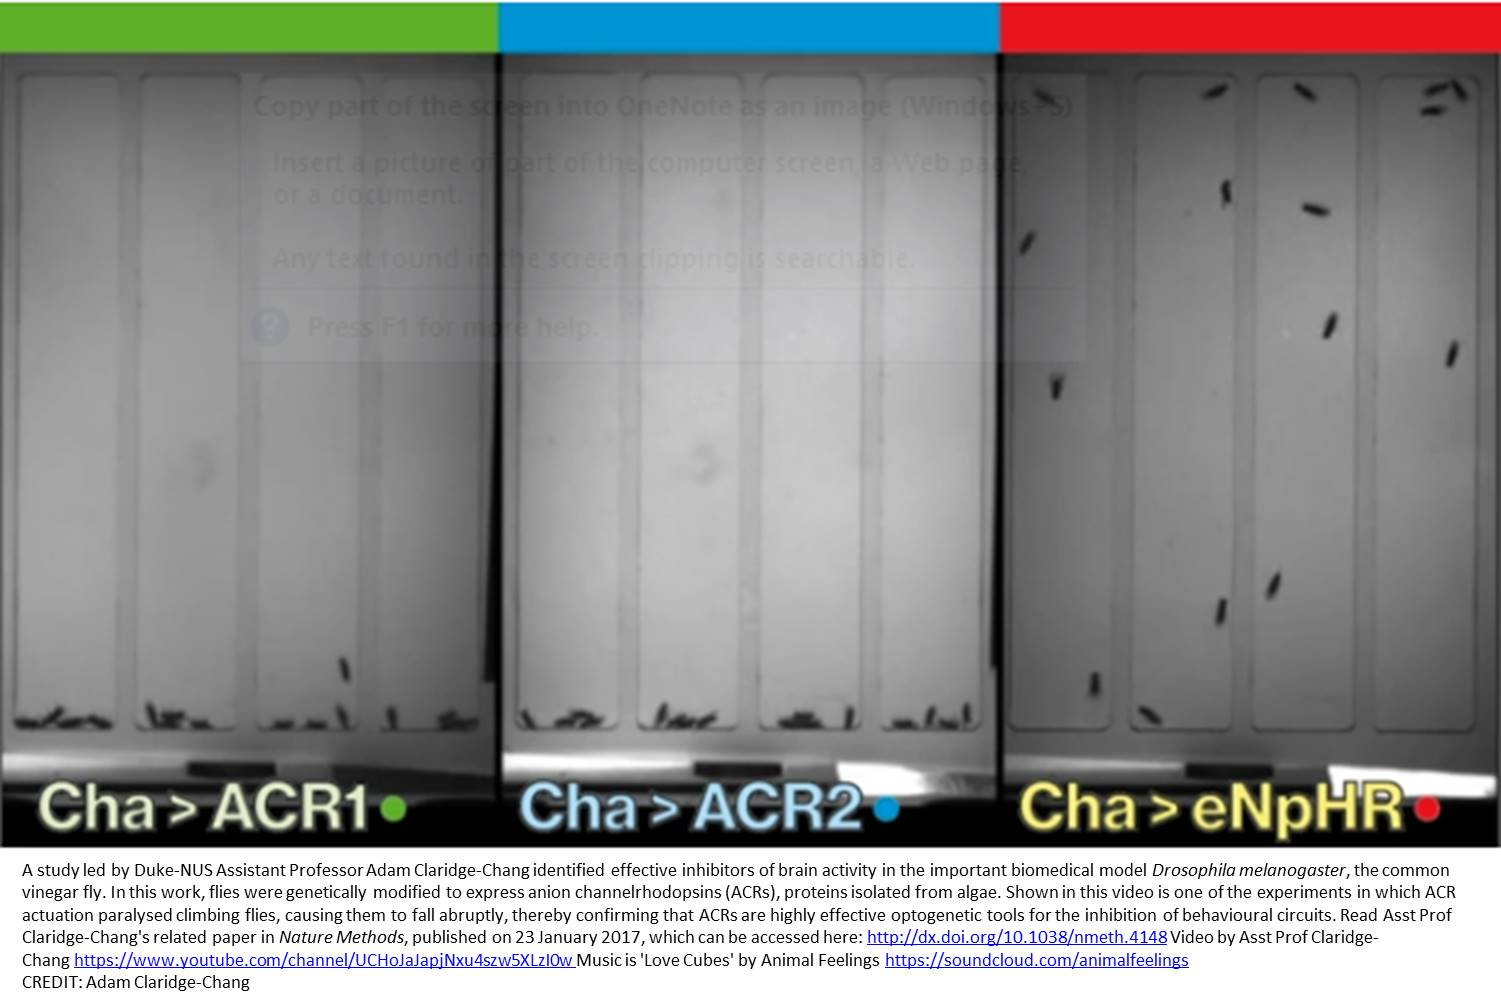 Optogenetic tool that inhibits neural activity